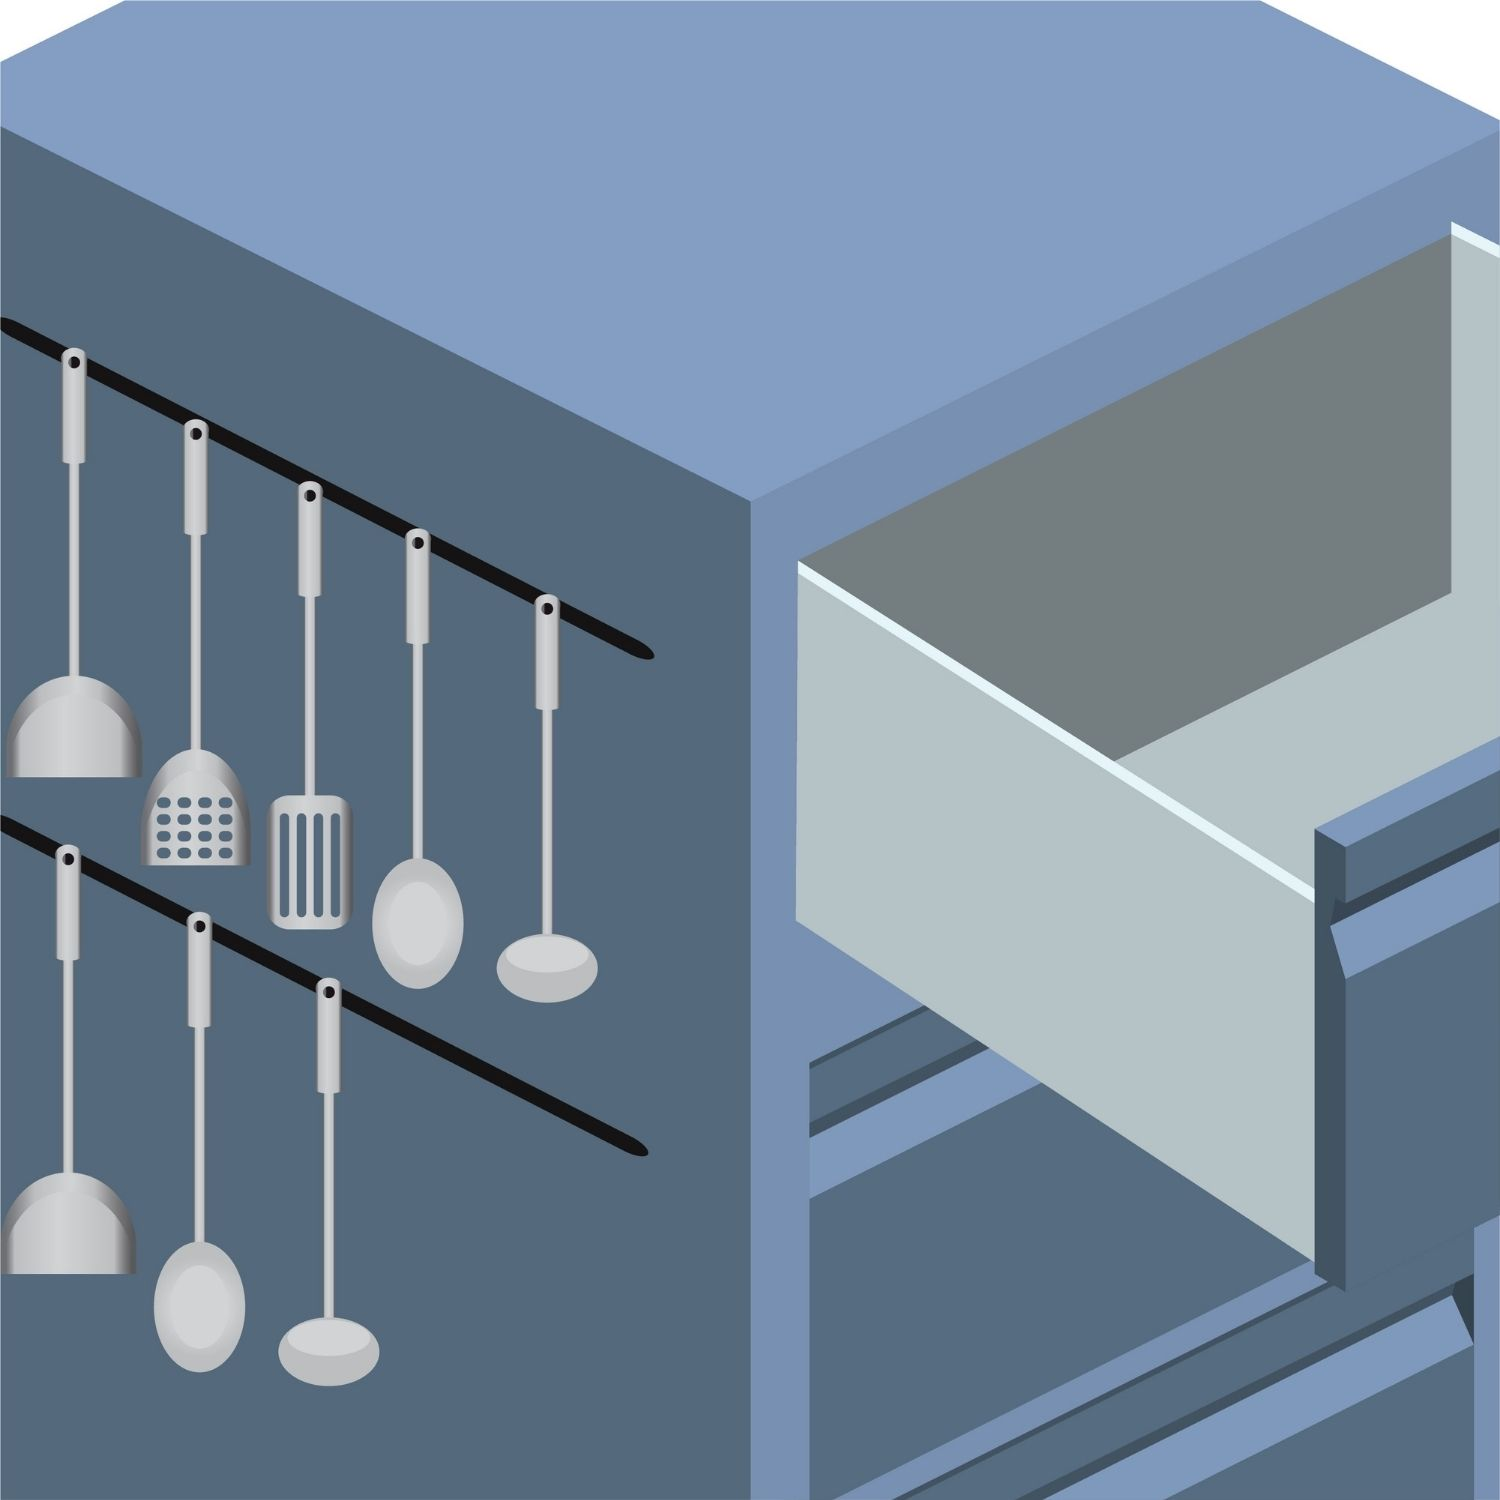 Utilizing The Sides of Your Cabinets